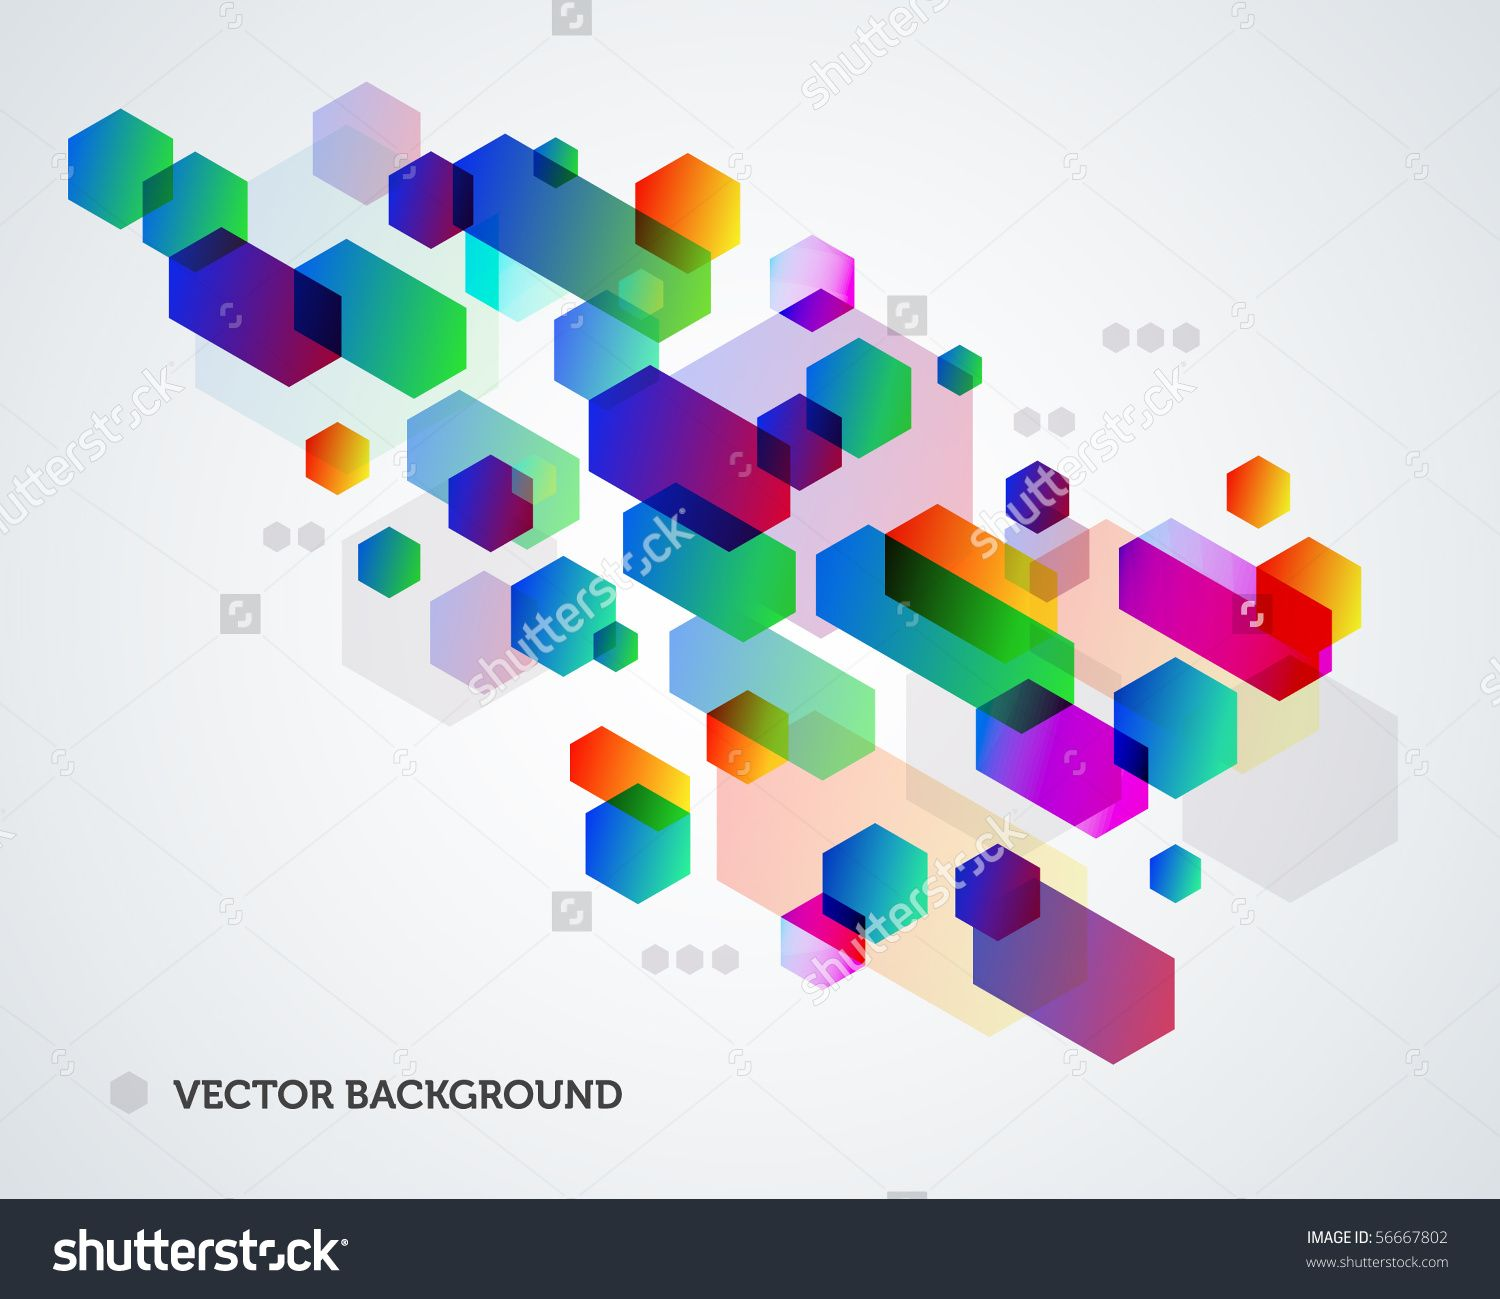 stock-vector-colorful-abstract-background-design-composed-of ...